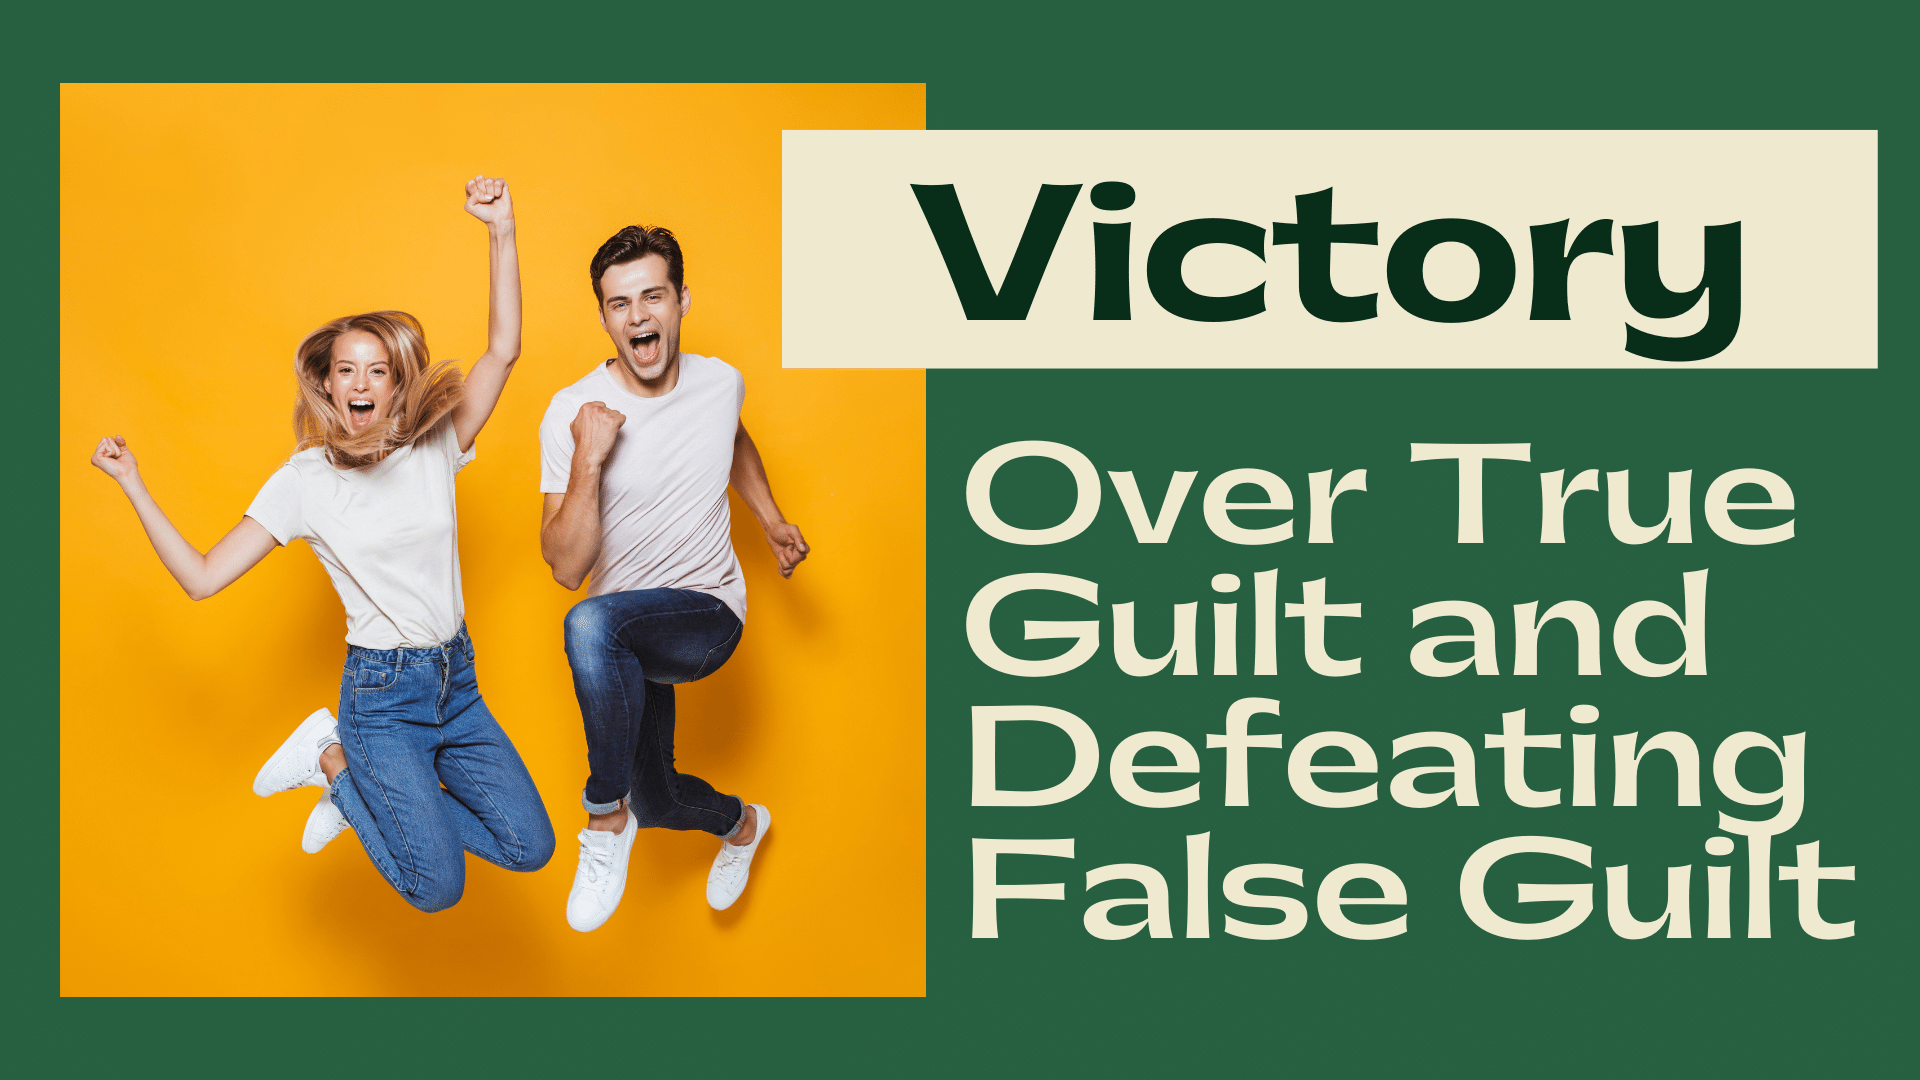 Victory Over True Guilt and Defeating False Guilt